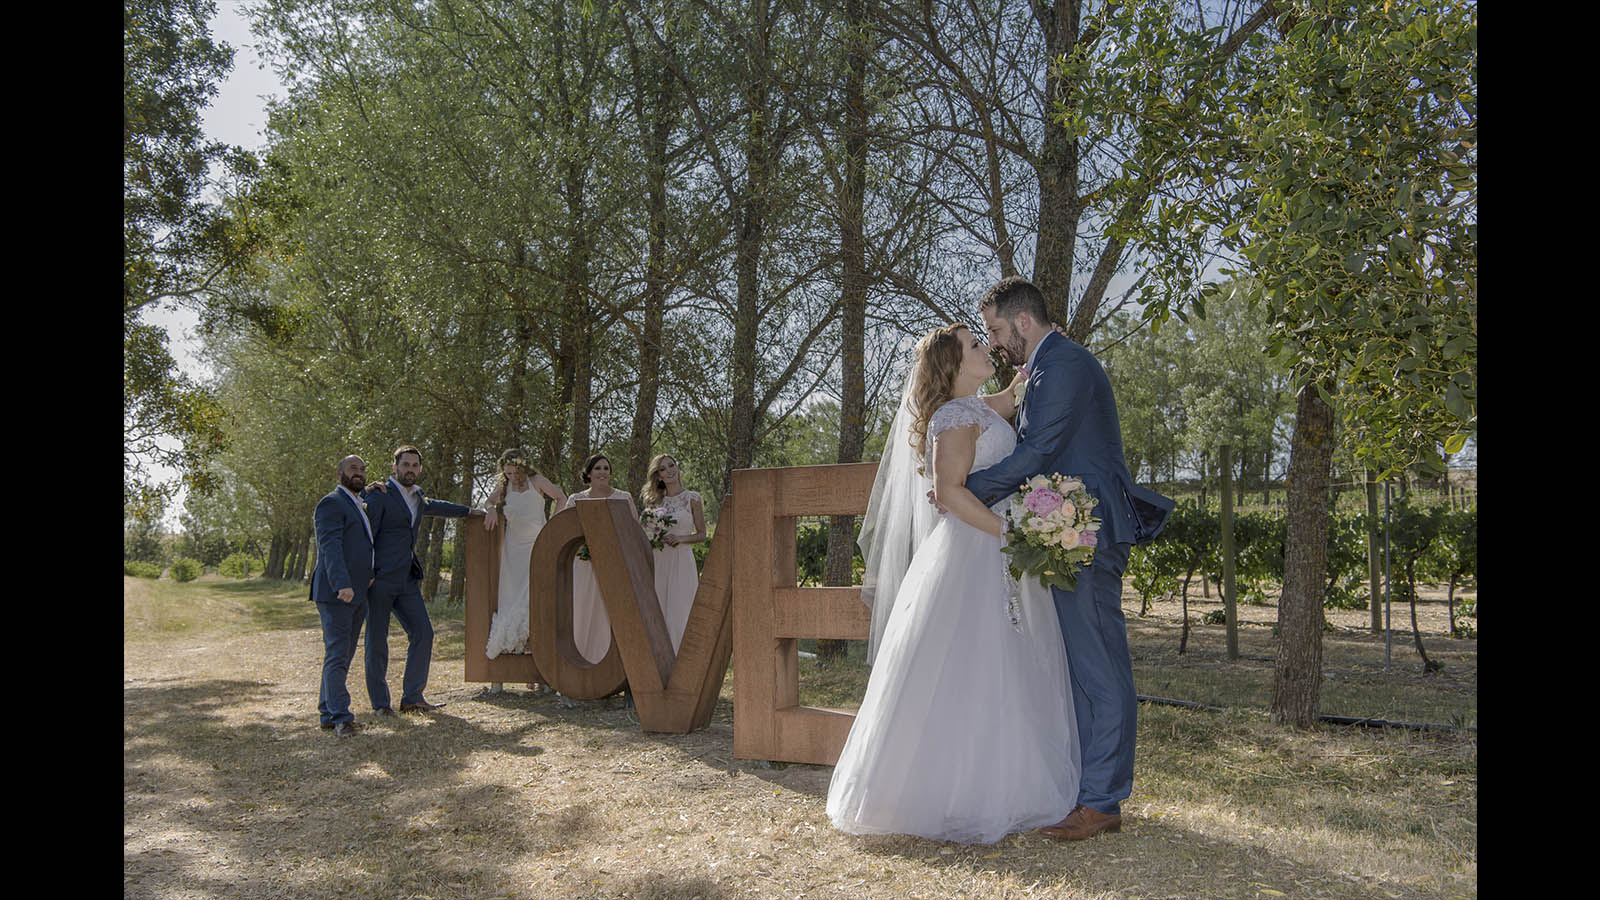 wedding location photo Glen Erin at Lancefield